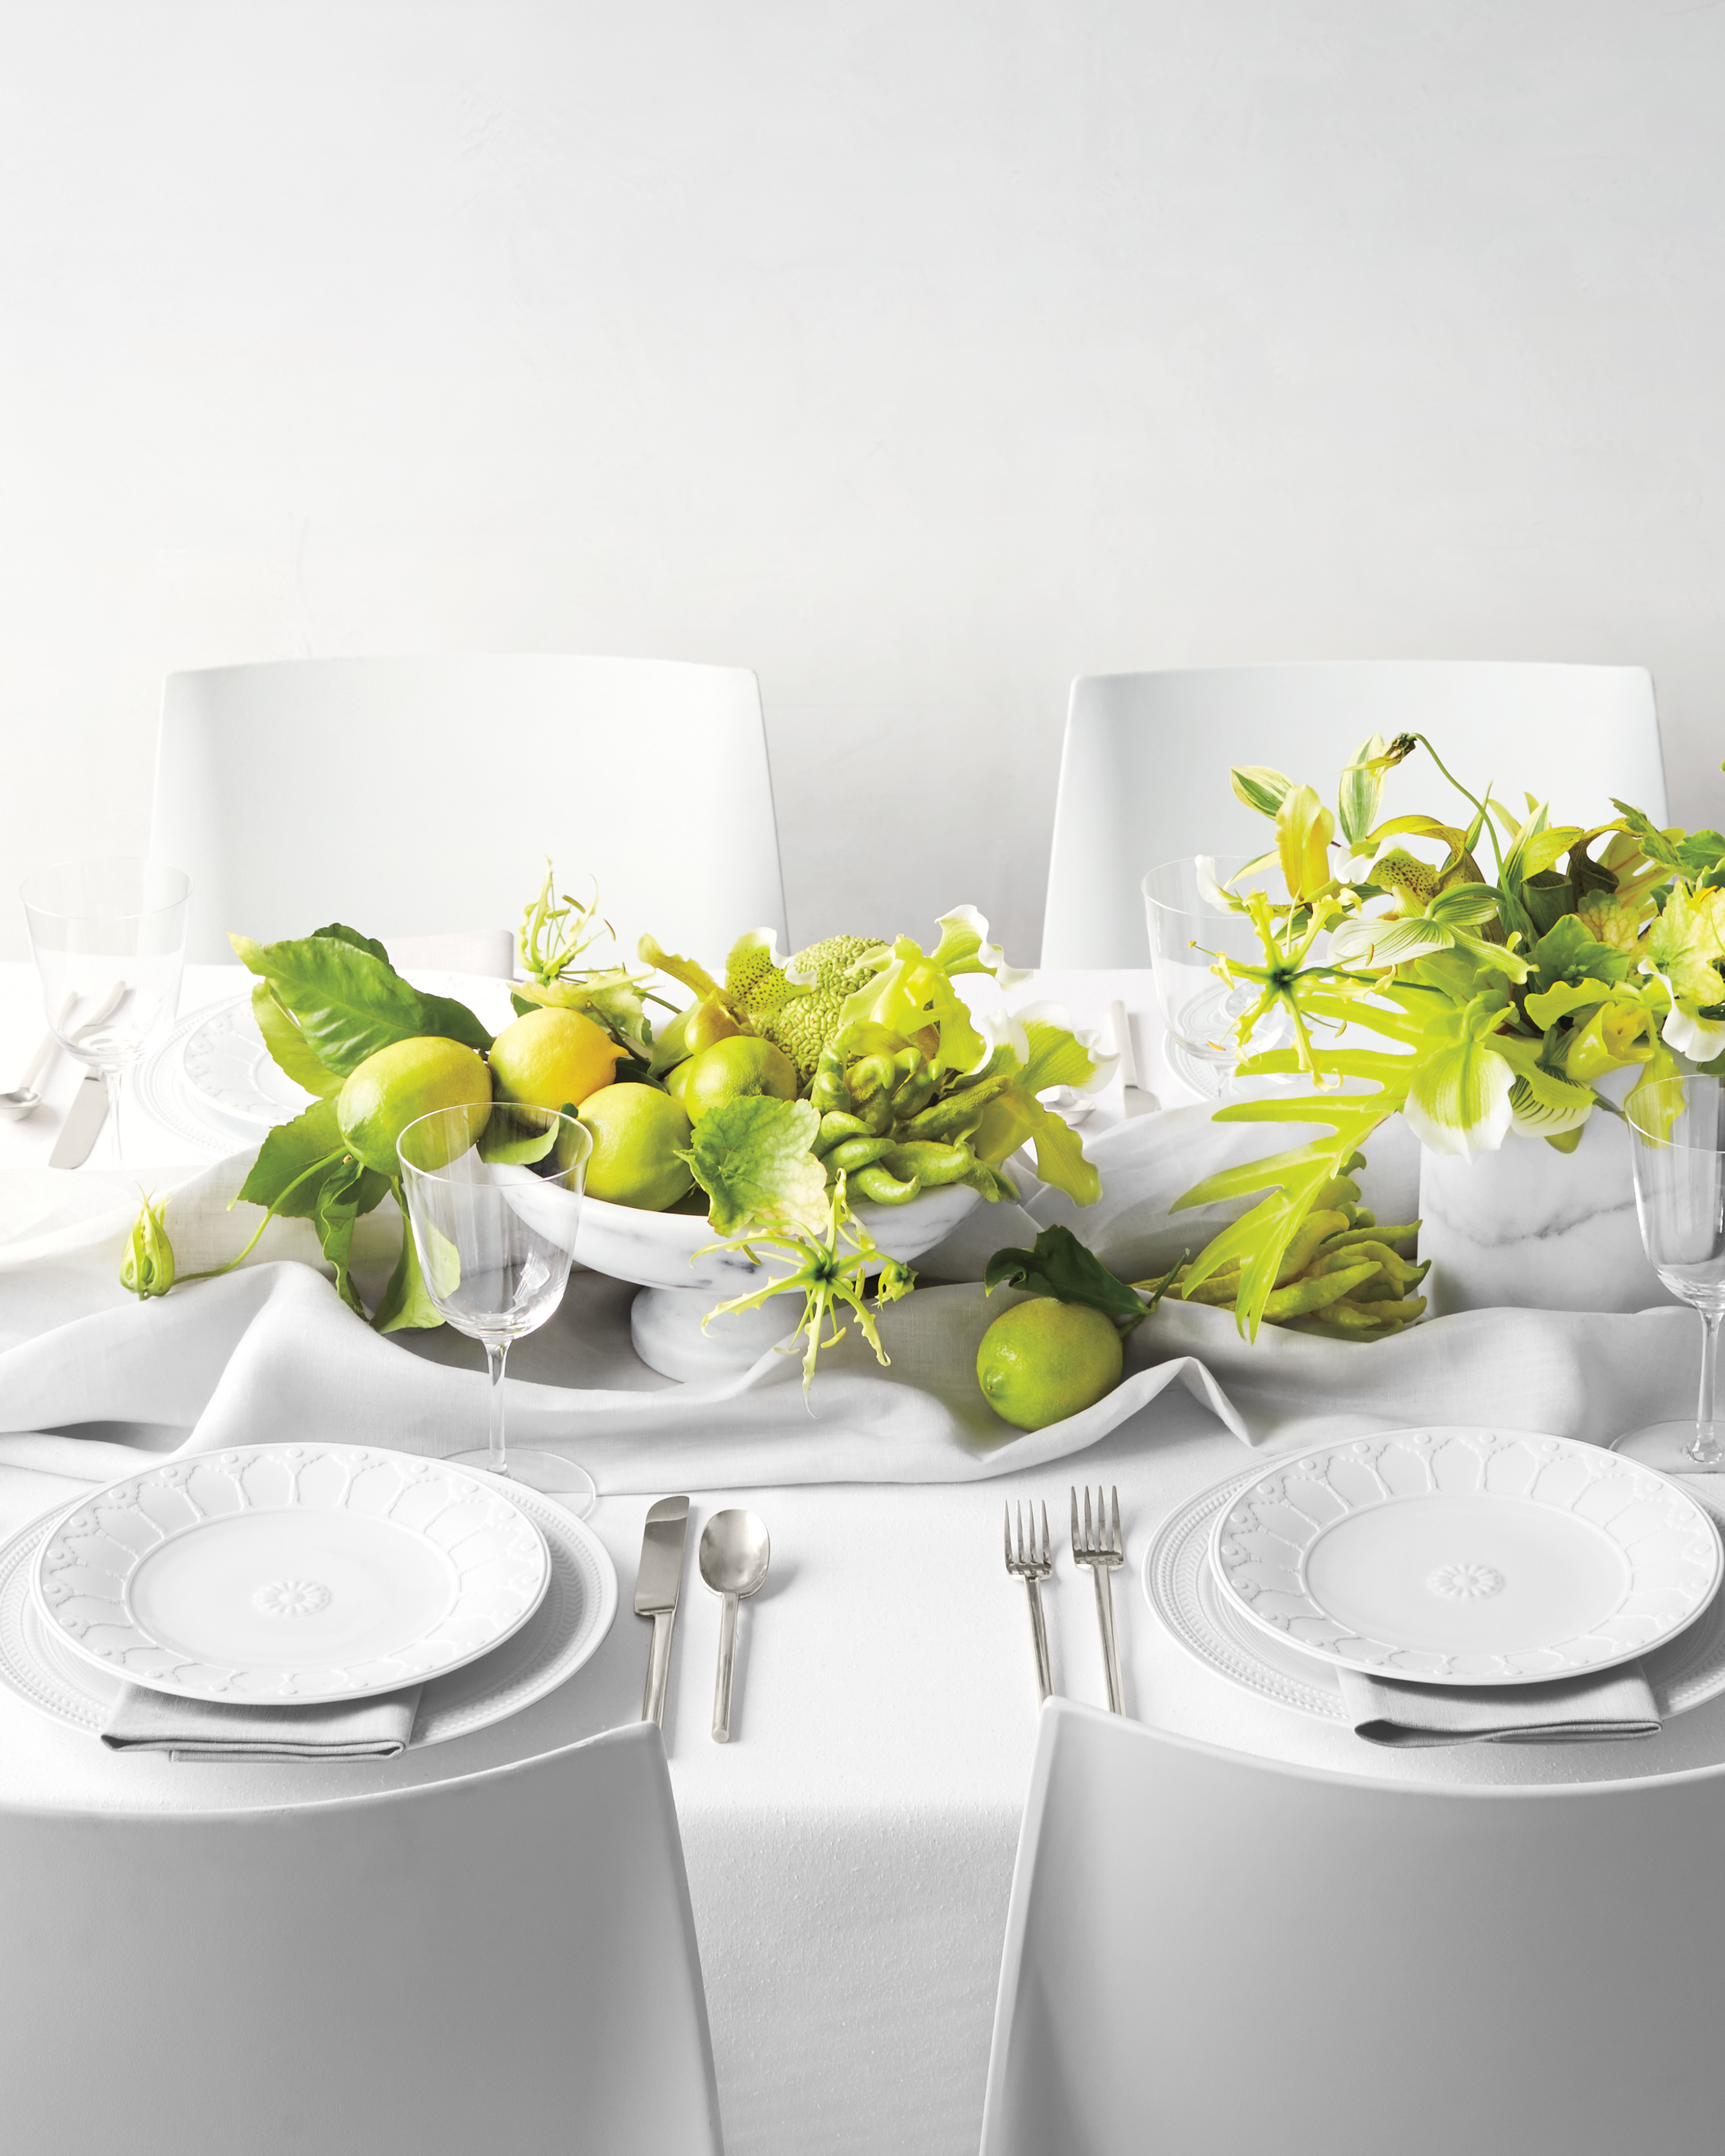 green-table-centerpieces-0412-d111712.jpg